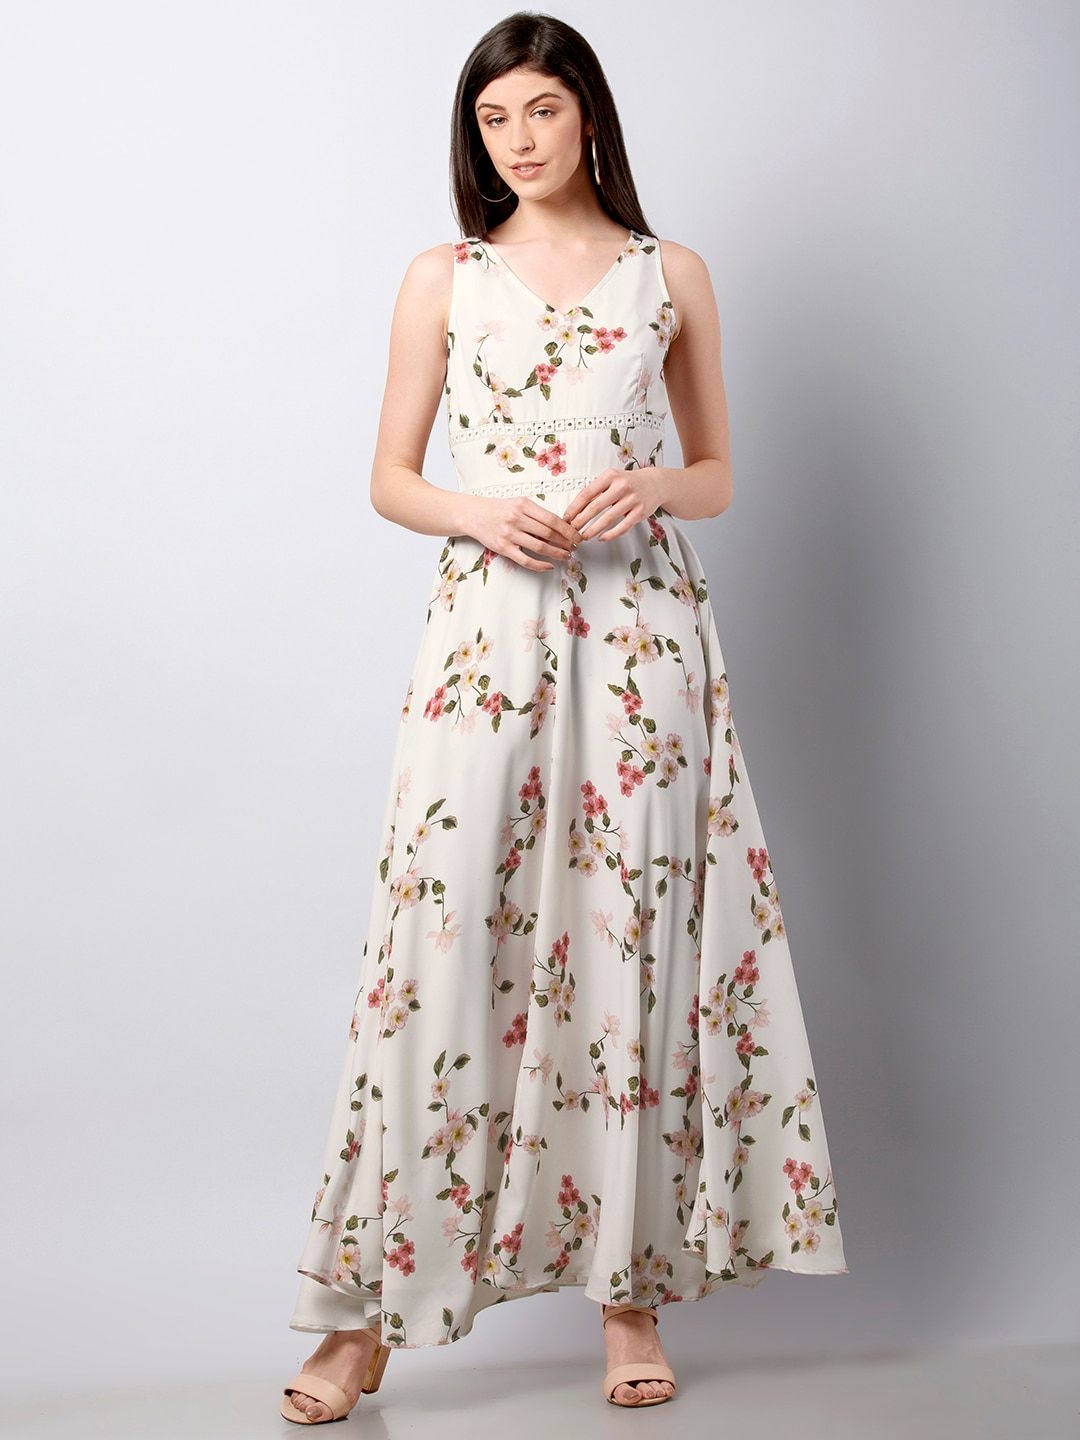 ed527b7528748 Faballey Maxi Dresses - Buy Faballey Maxi Dresses online in India